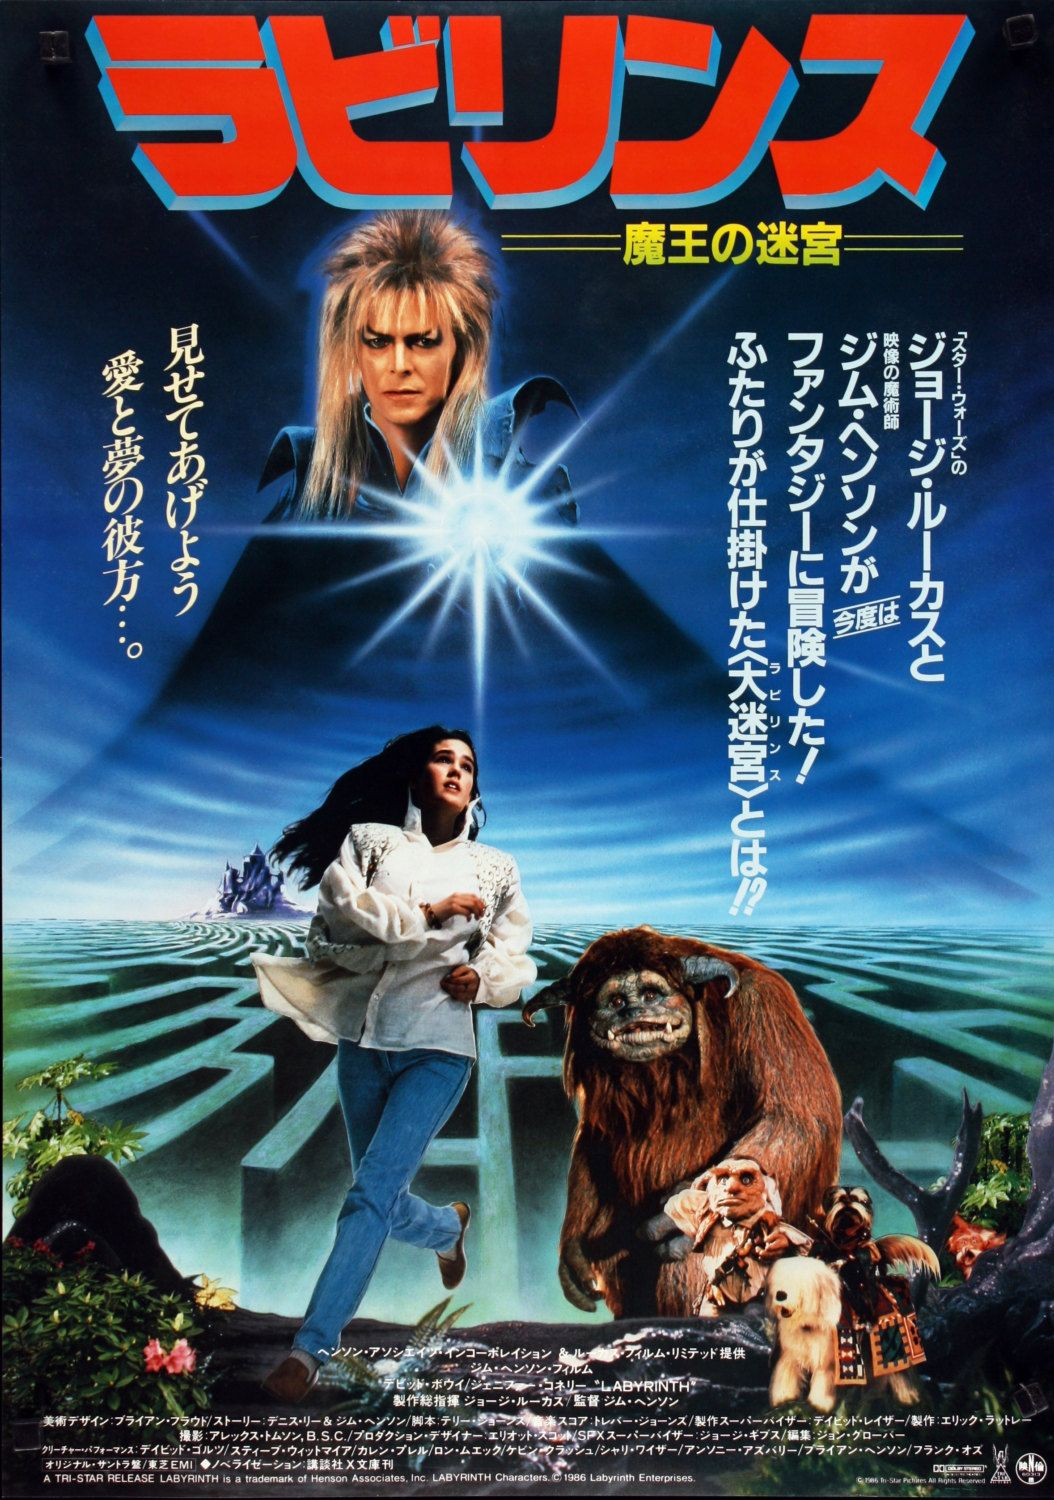 Labyrinth Japanese Edition Movie Poster Reprint Etsy In 2021 Labyrinth Movie Poster Labyrinth Movie Japanese Movie Poster